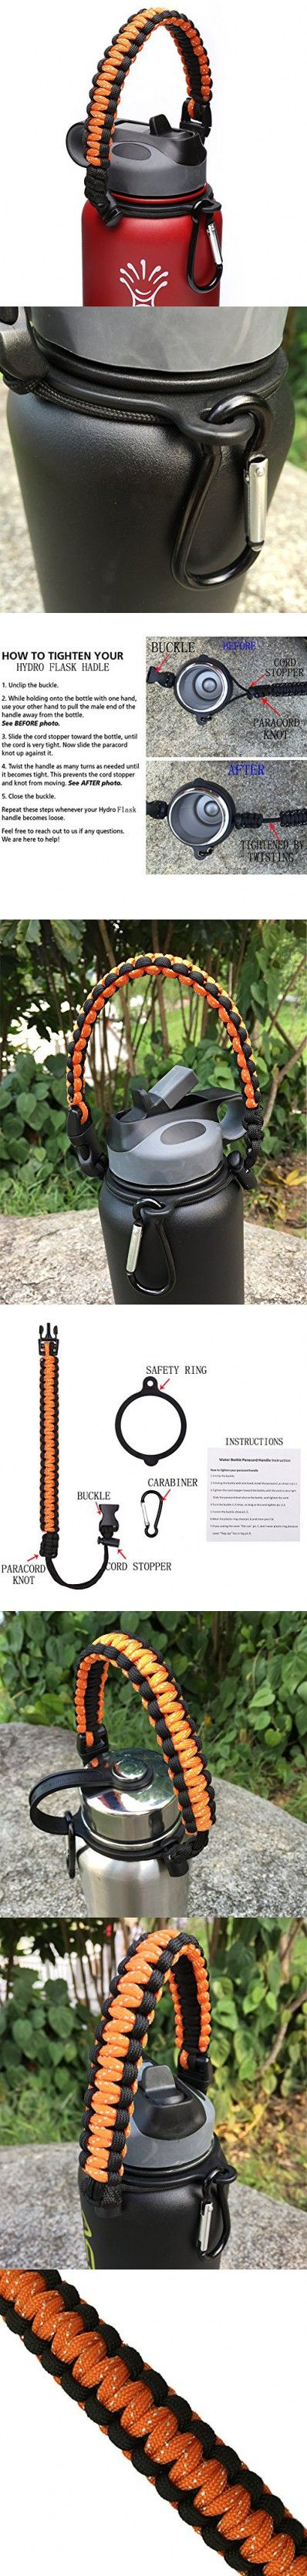 Hydro Flask Handle - Paracord Survival Strap with Security Ring for Wide Mouth Water Bottles Carrier (Orange/Black)